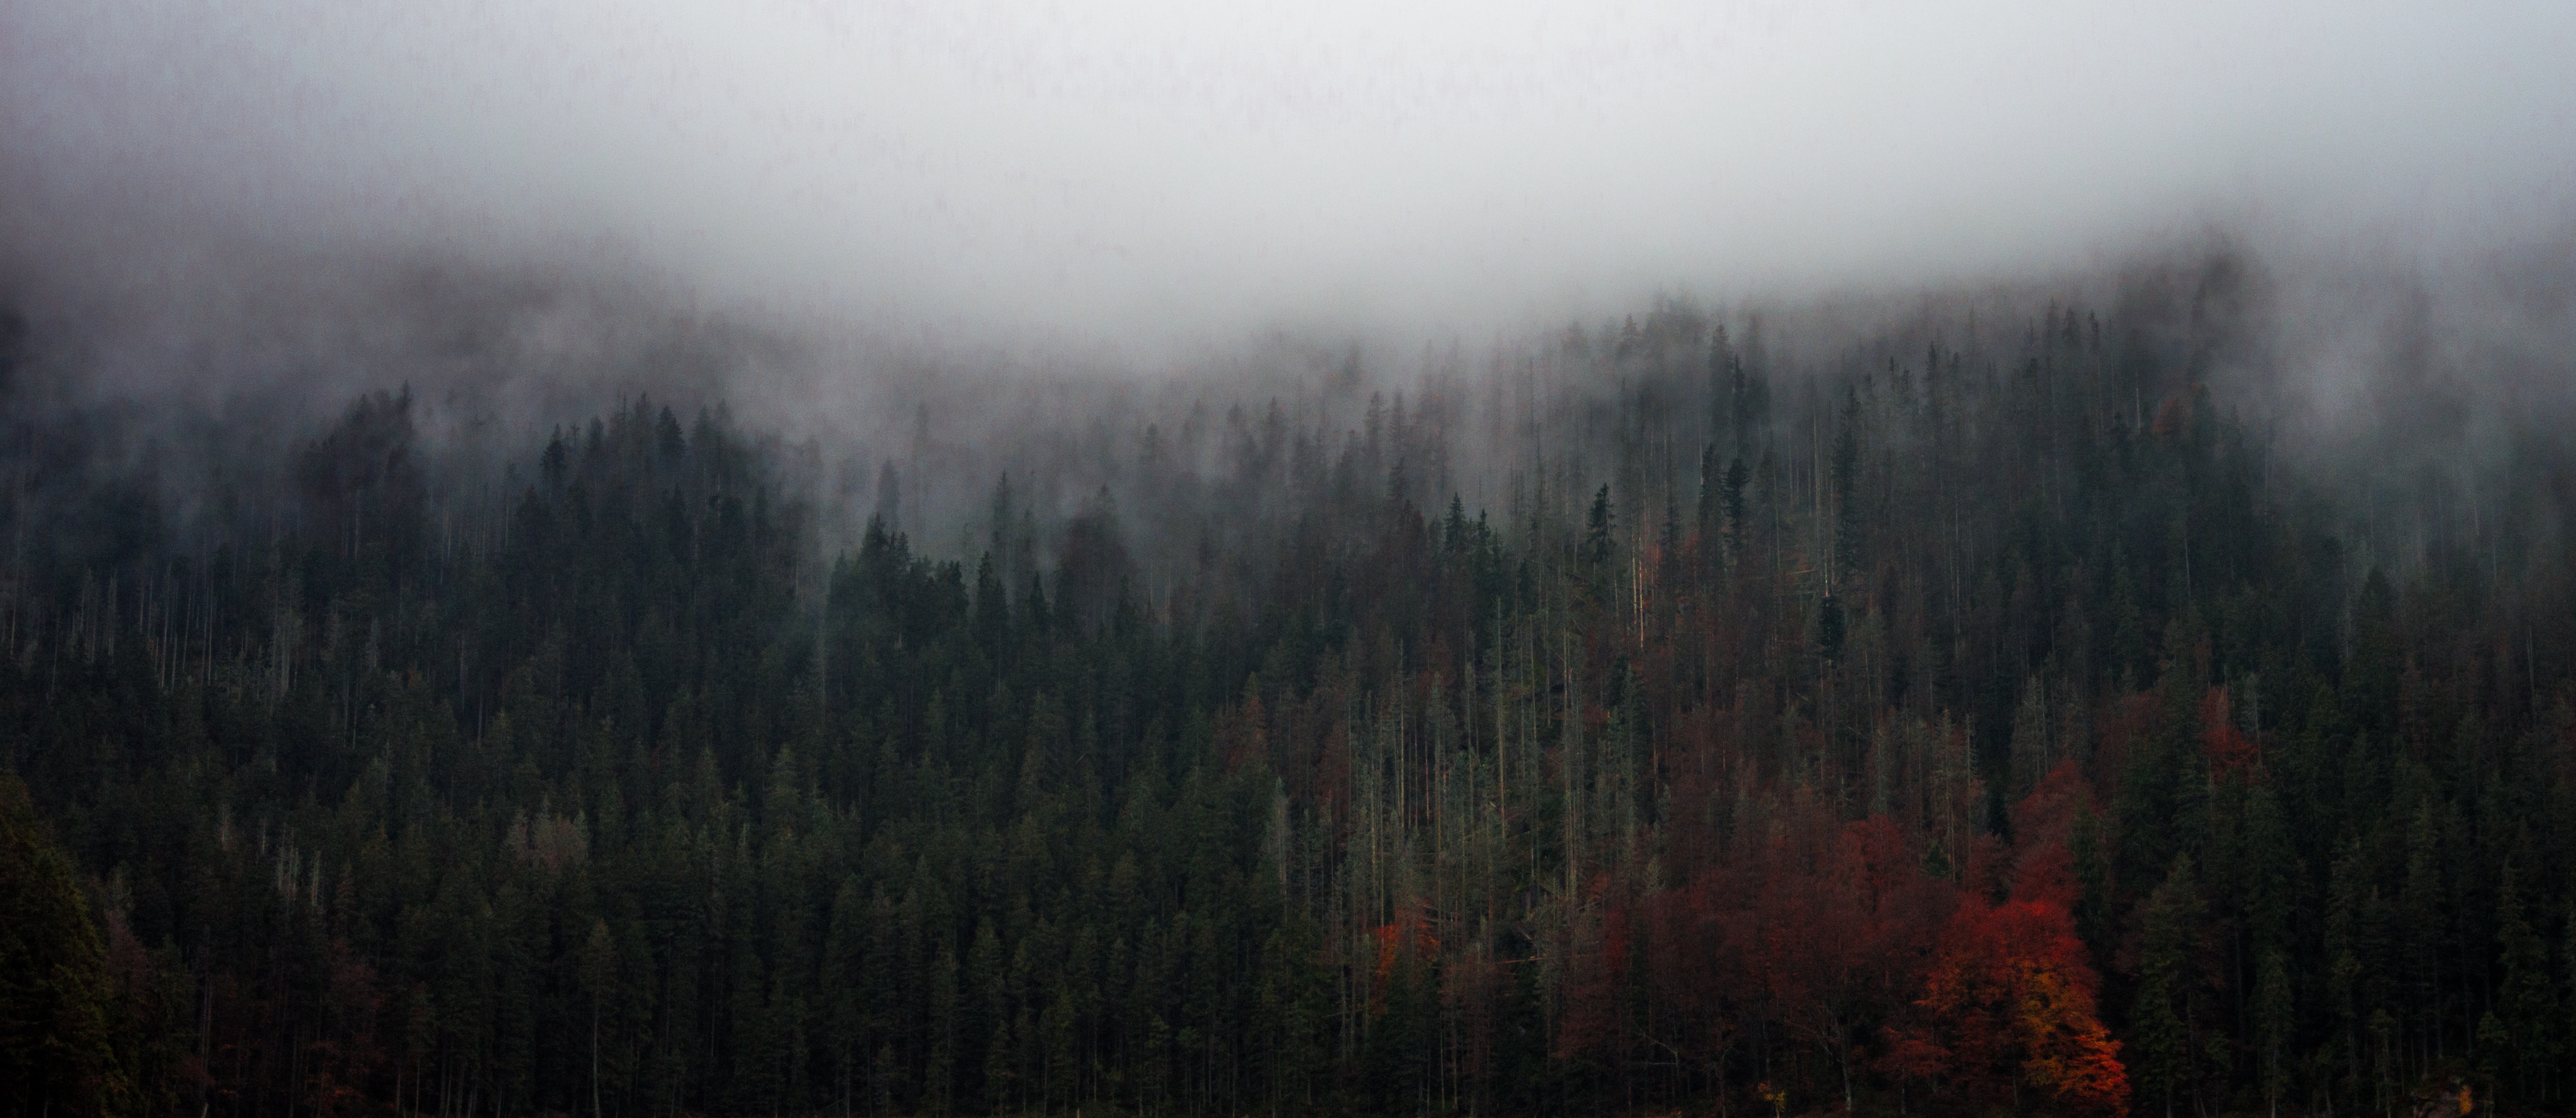 Tall trees with dark green and red leaves under a thick mist